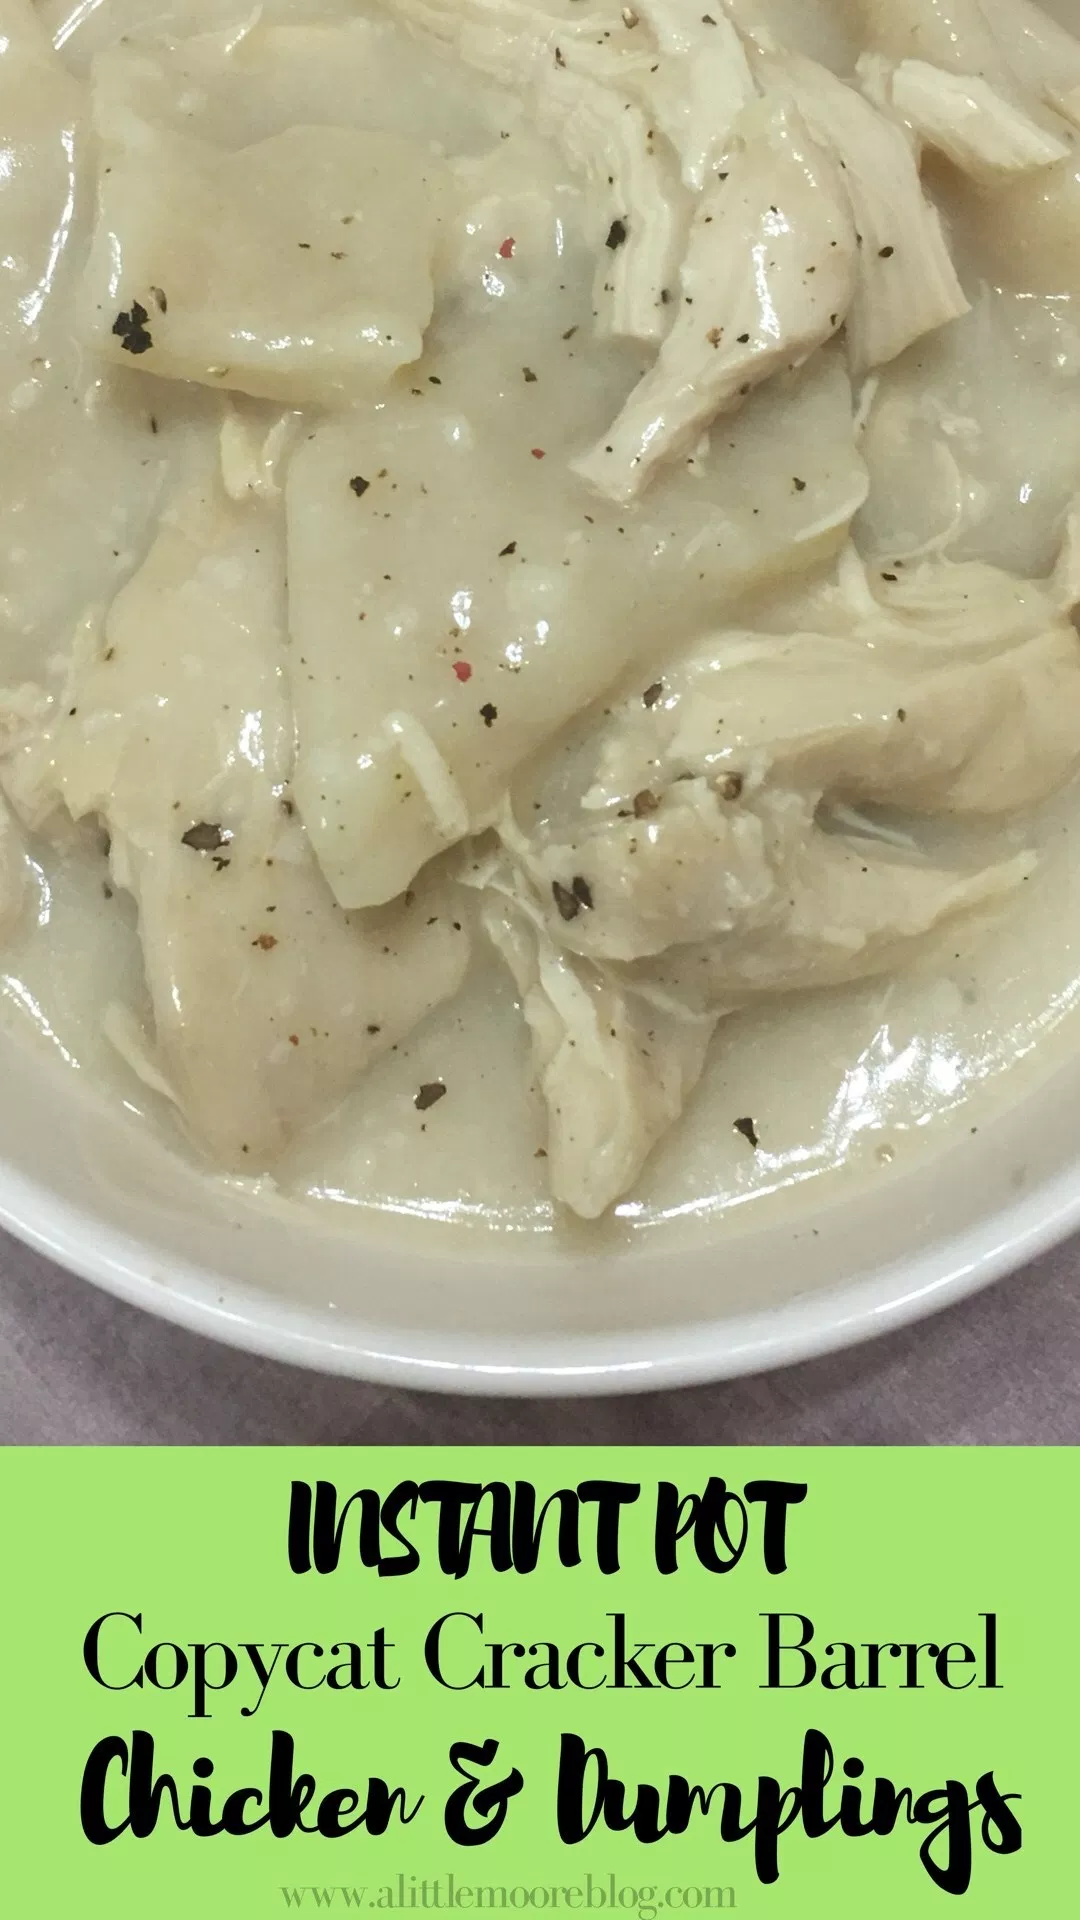 Instant Pot Copycat Cracker Barrel Chicken and Dumplings - A Little Moore